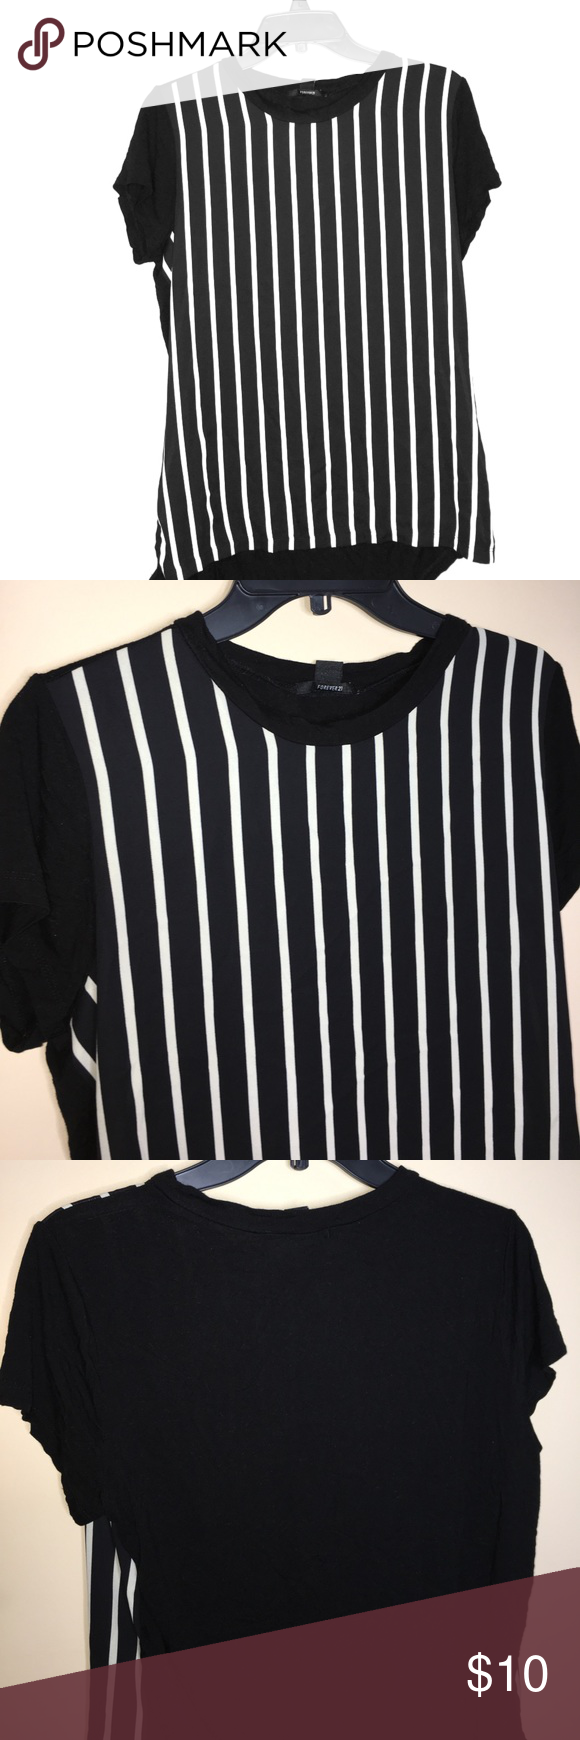 Forever 21 Black Blouse With Off White Stripes Black Blouse White Stripe Clothes Design